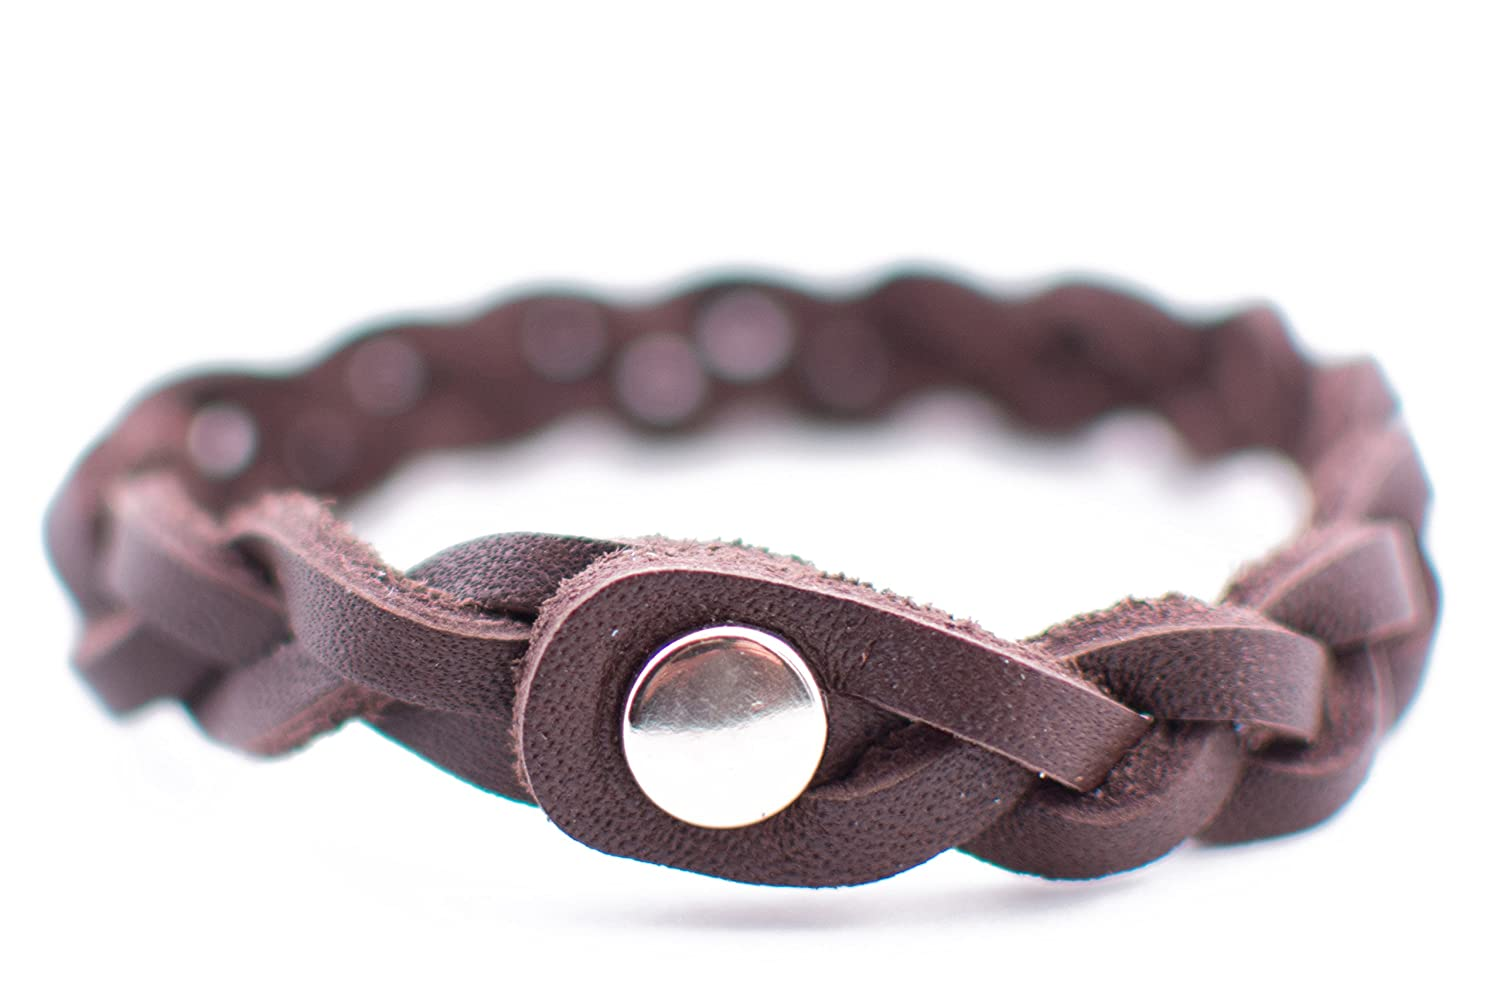 The Oil Lab Braided Leather Diffuser Bracelet by The Oil Lab